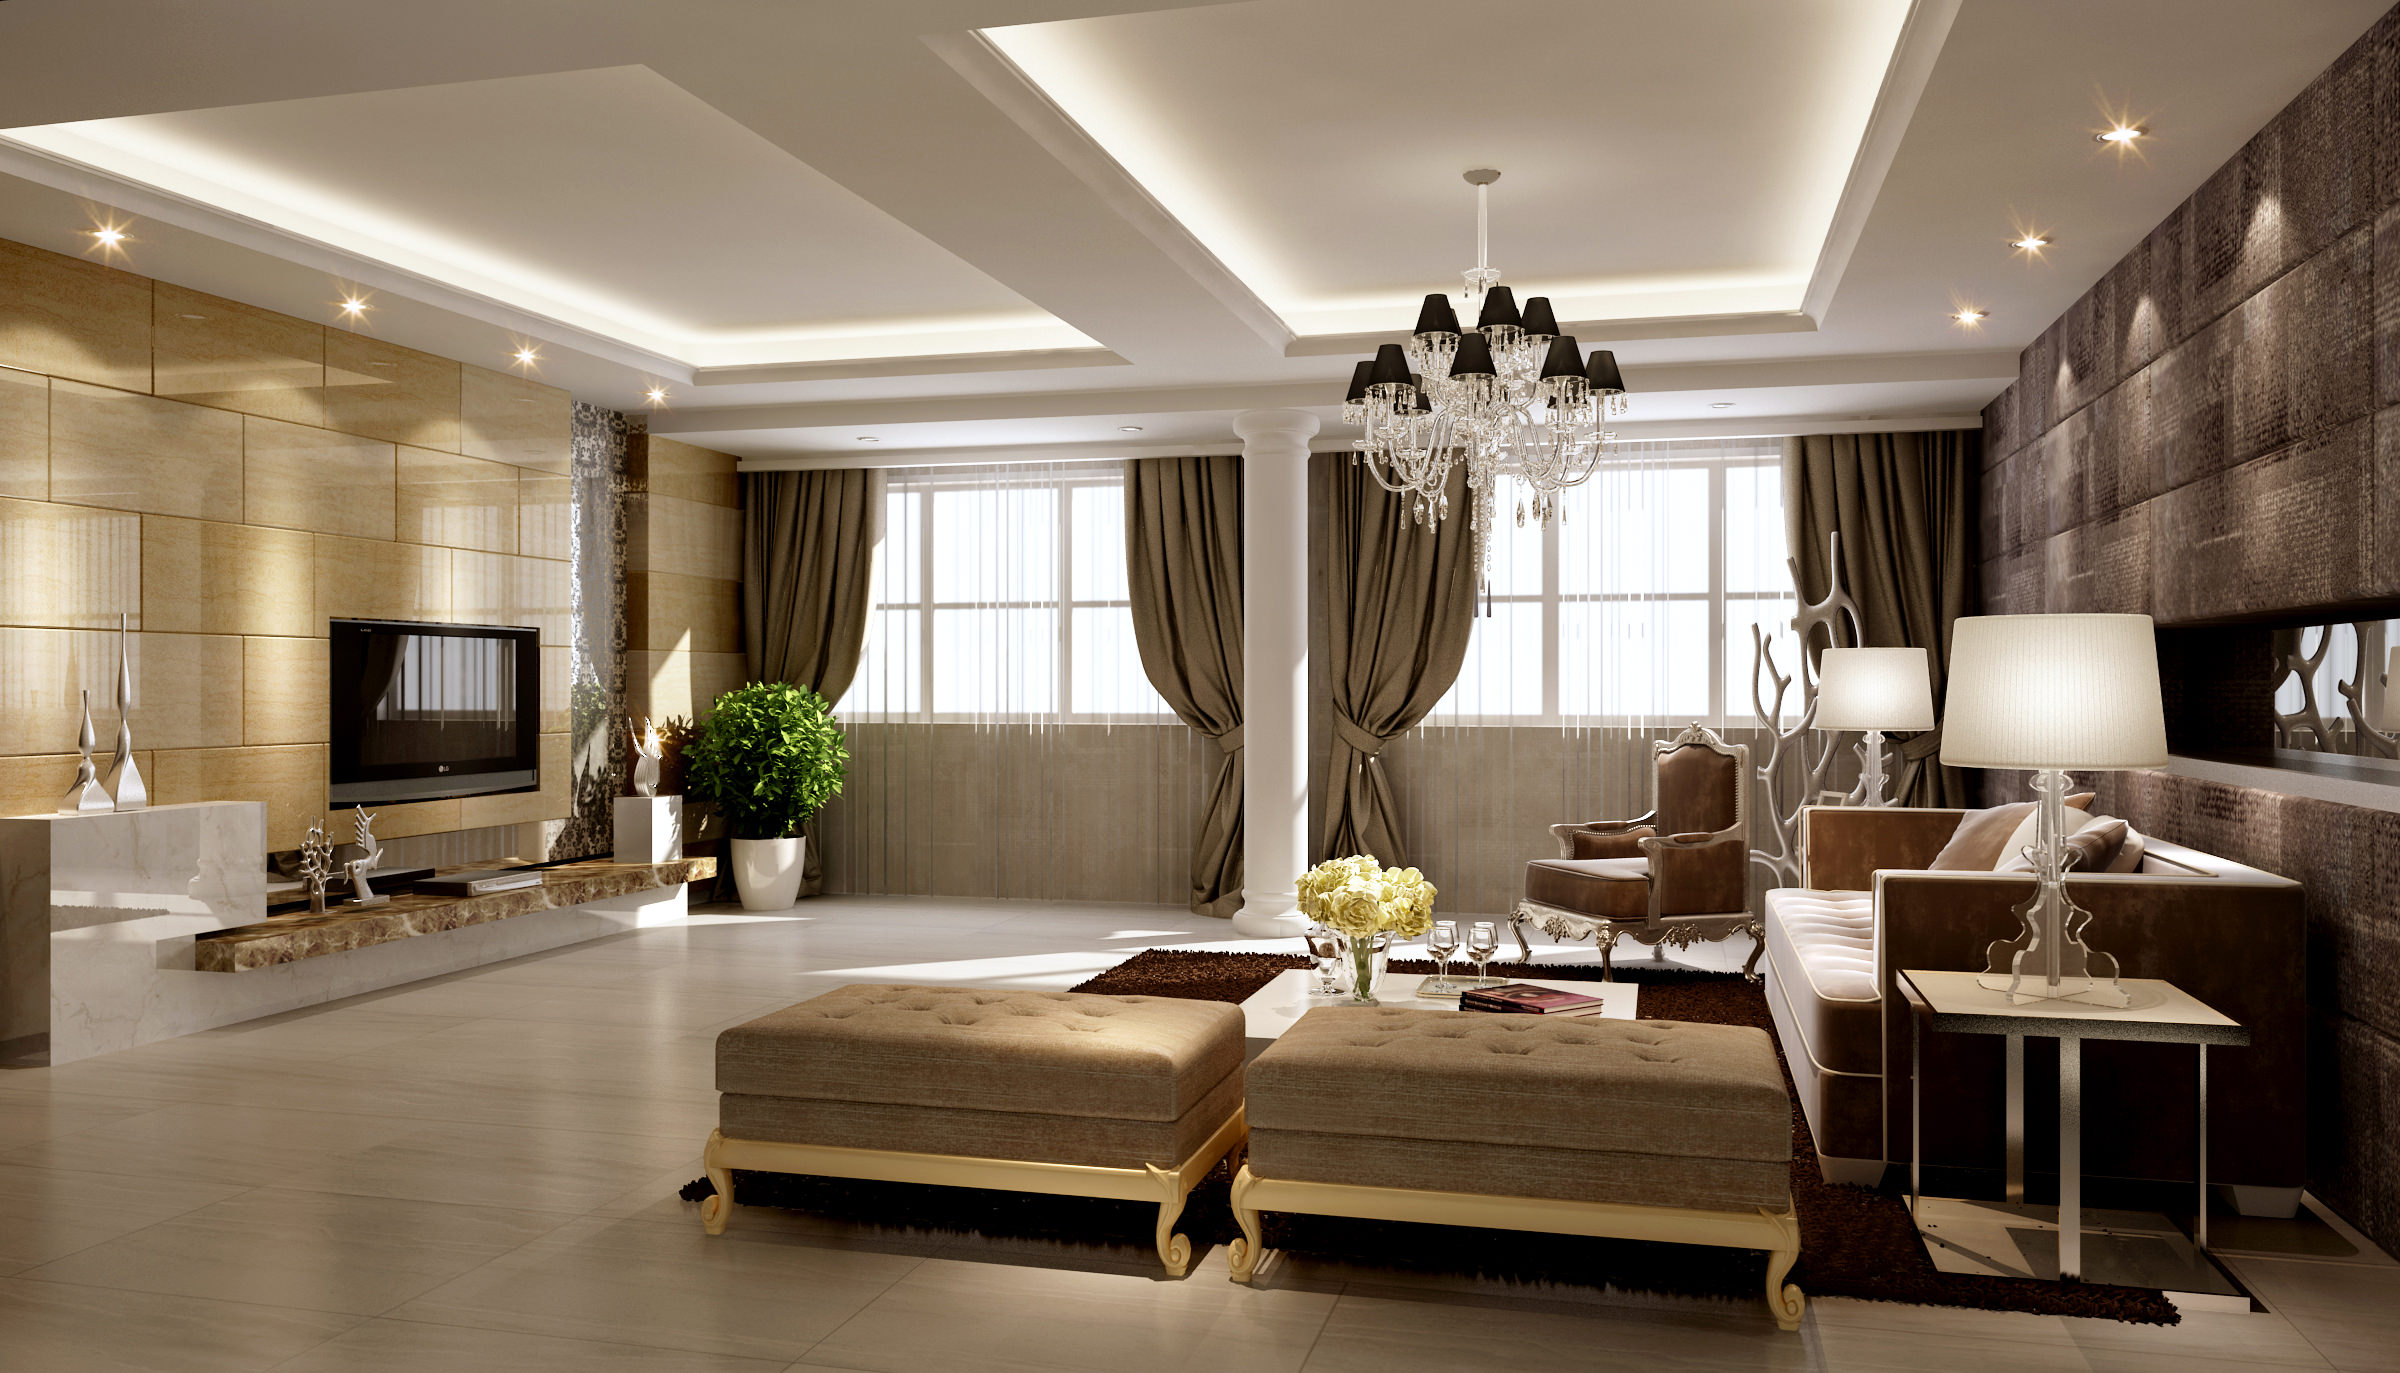 Attractive ... Collection Living Room And Bedroom Collection 3d Model Max 8 ... Part 4